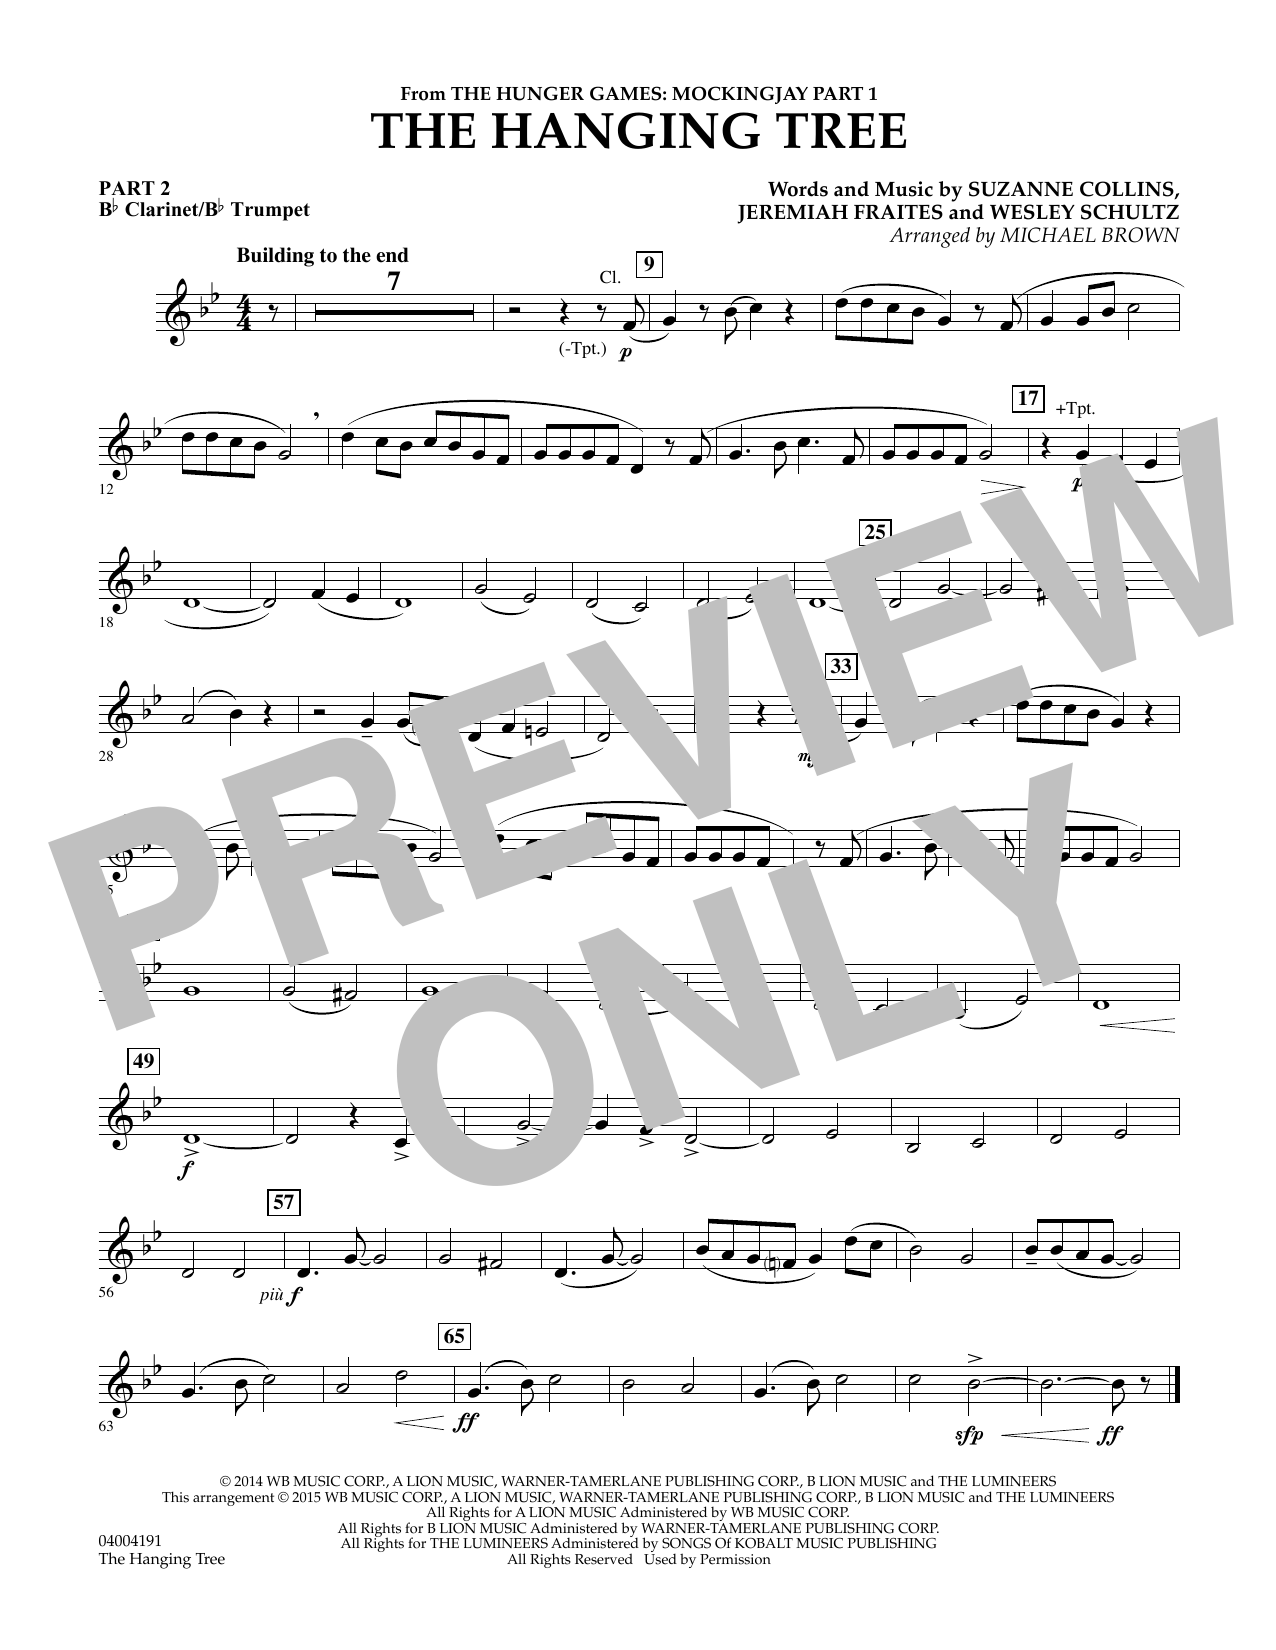 Michael Brown The Hanging Tree (from The Hunger Games: Mockingjay Part 1) - Pt.2 - Bb Clarinet/Bb Trumpet sheet music notes and chords. Download Printable PDF.